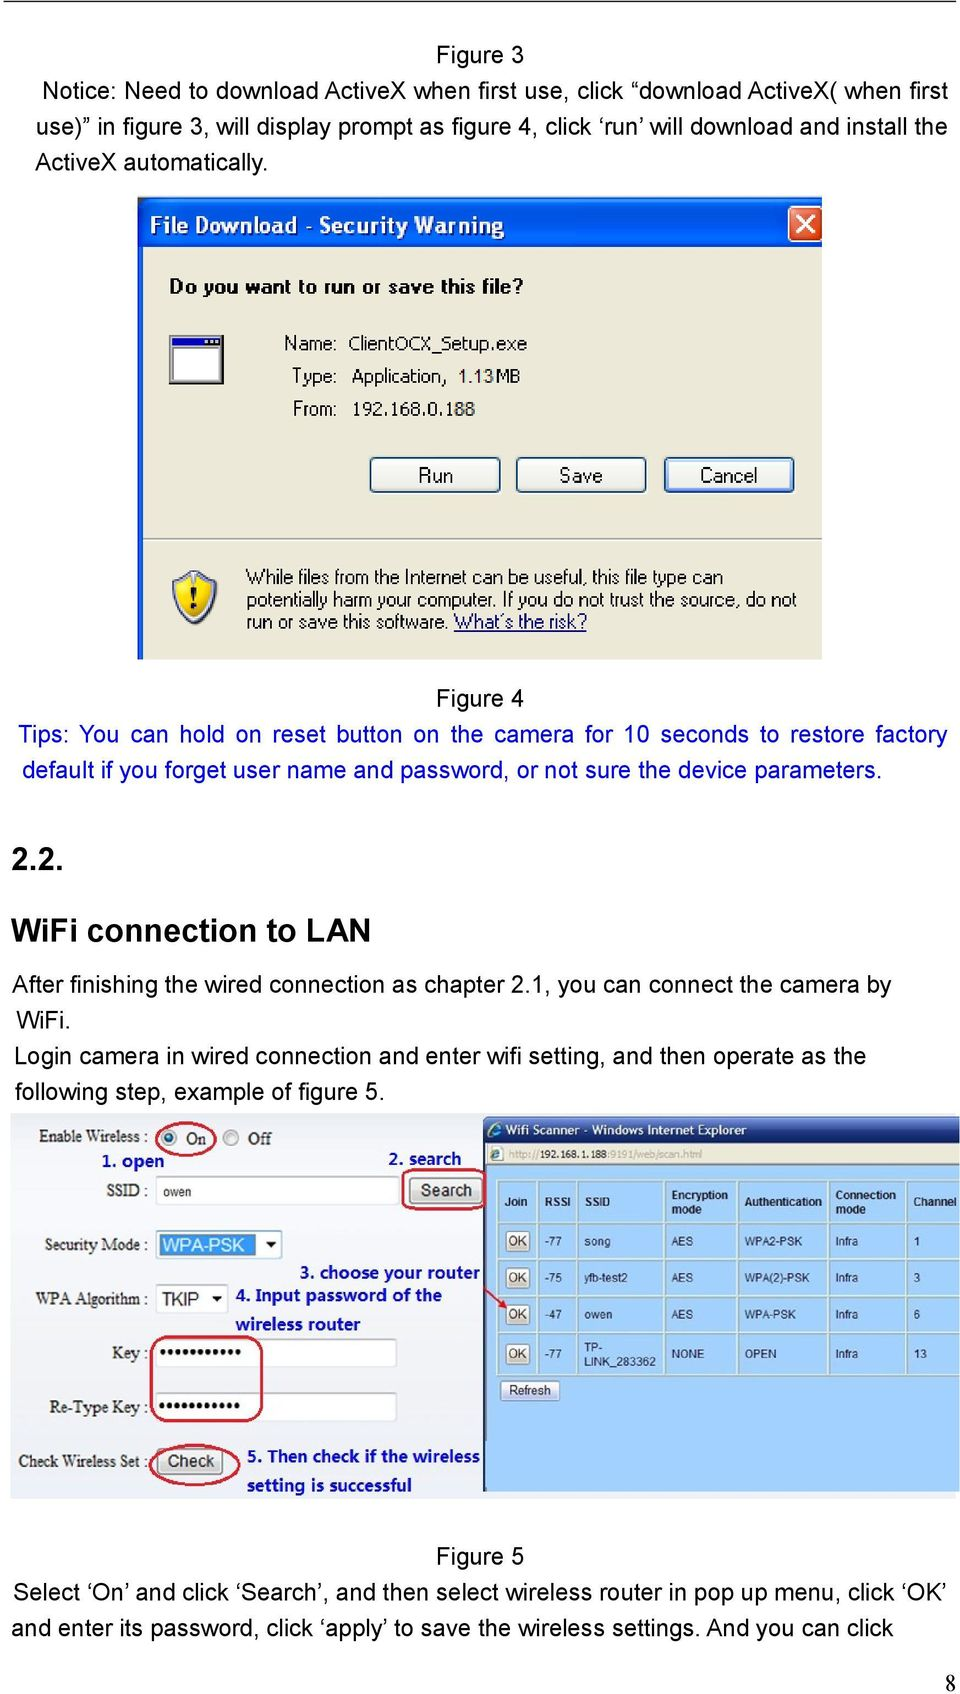 2. WiFi connection to LAN After finishing the wired connection as chapter 2.1, you can connect the camera by WiFi.